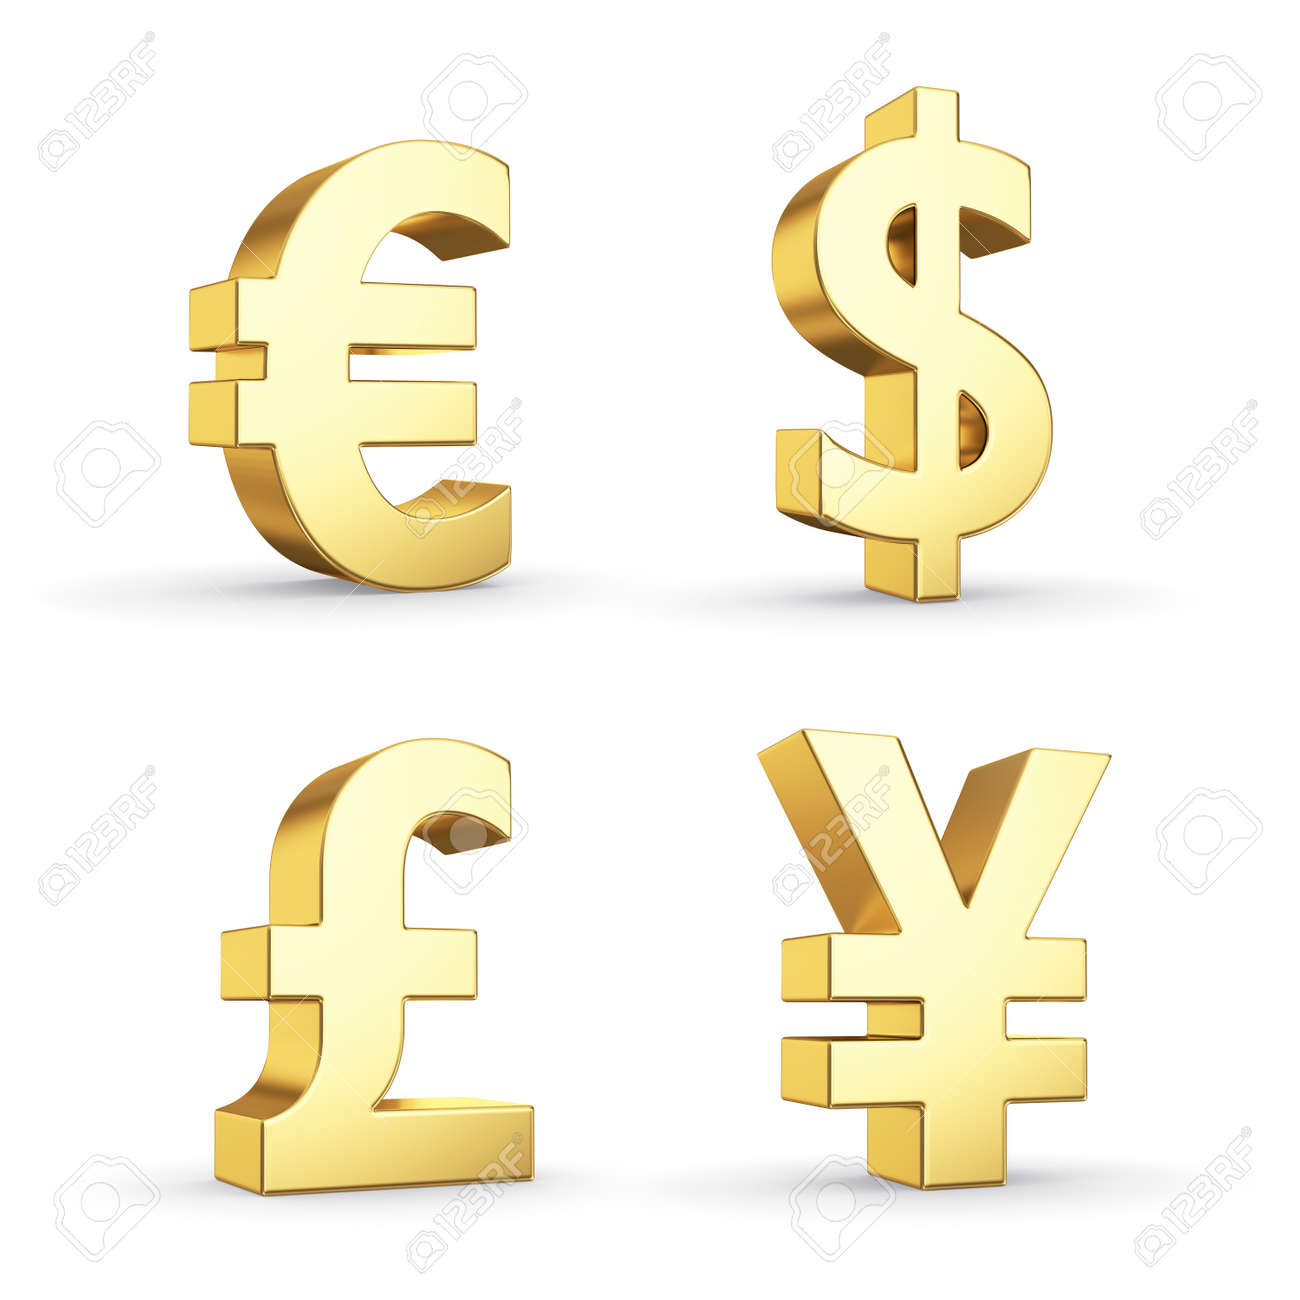 Golden currency symbols isolated on white with clipping path - 20352881